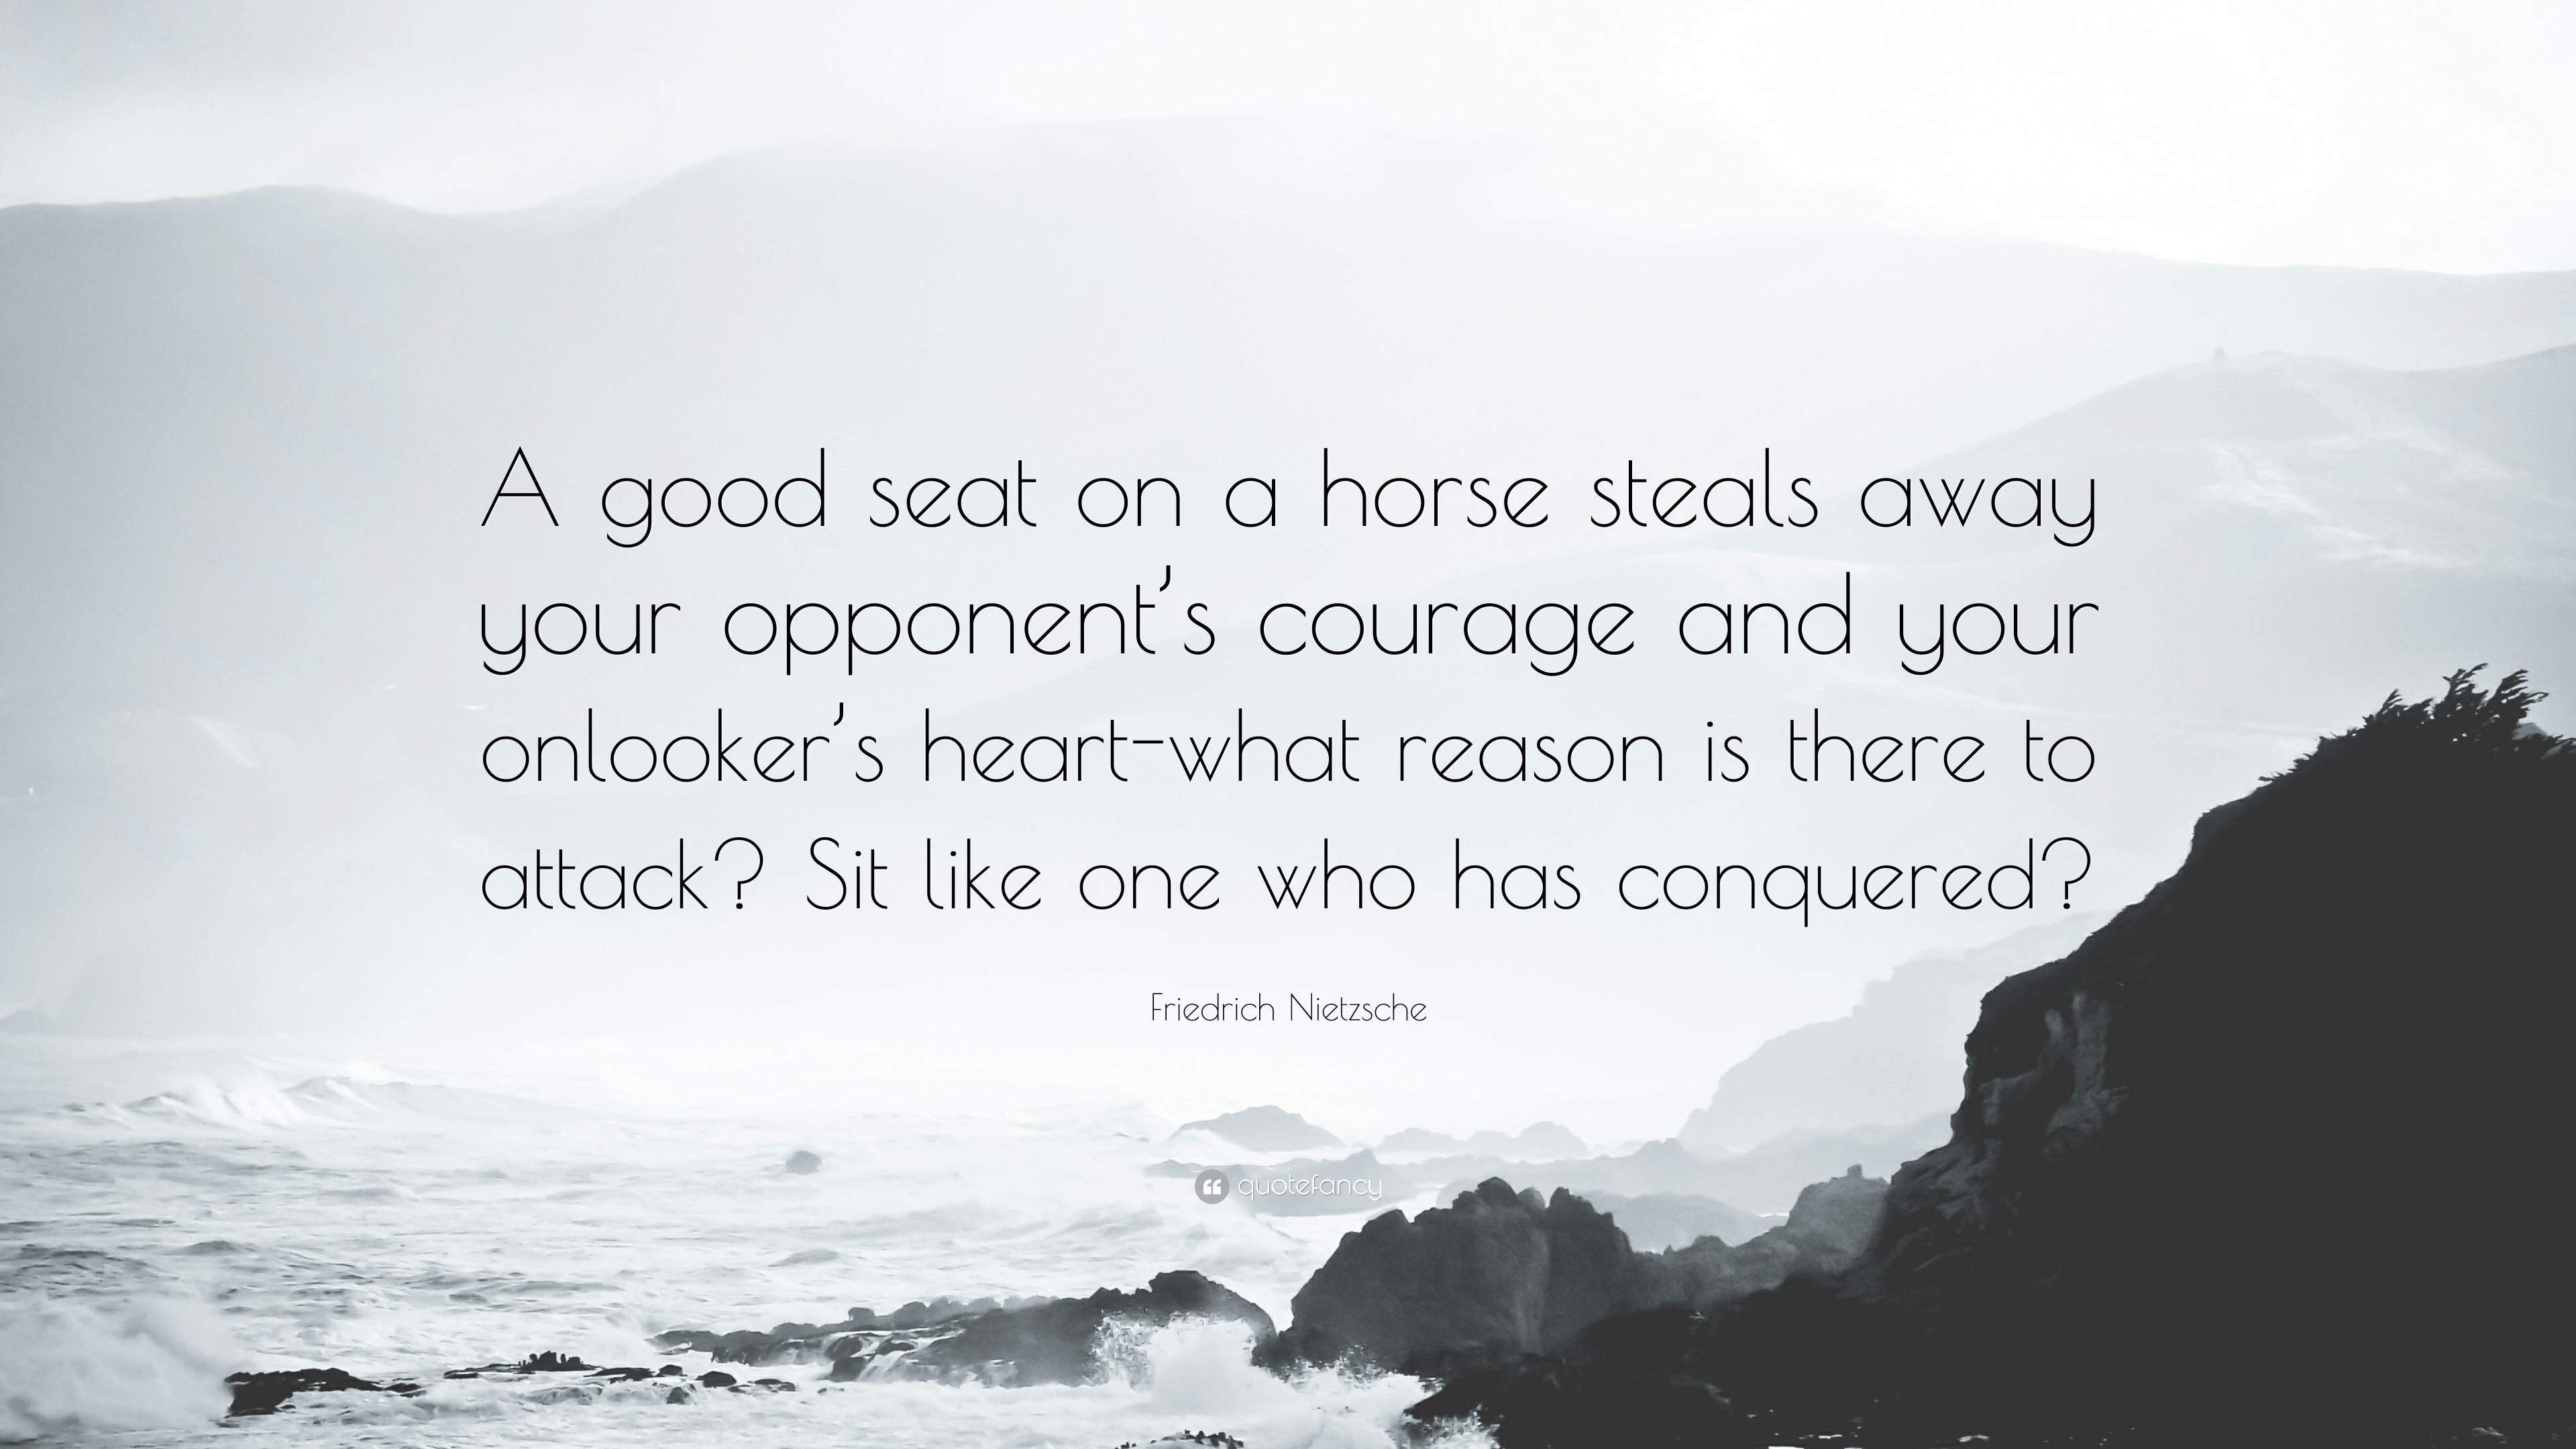 Friedrich Nietzsche Quote A Good Seat On A Horse Steals Away Your Opponent S Courage And Your Onlooker S Heart What Reason Is There To Attack Sit 7 Wallpapers Quotefancy